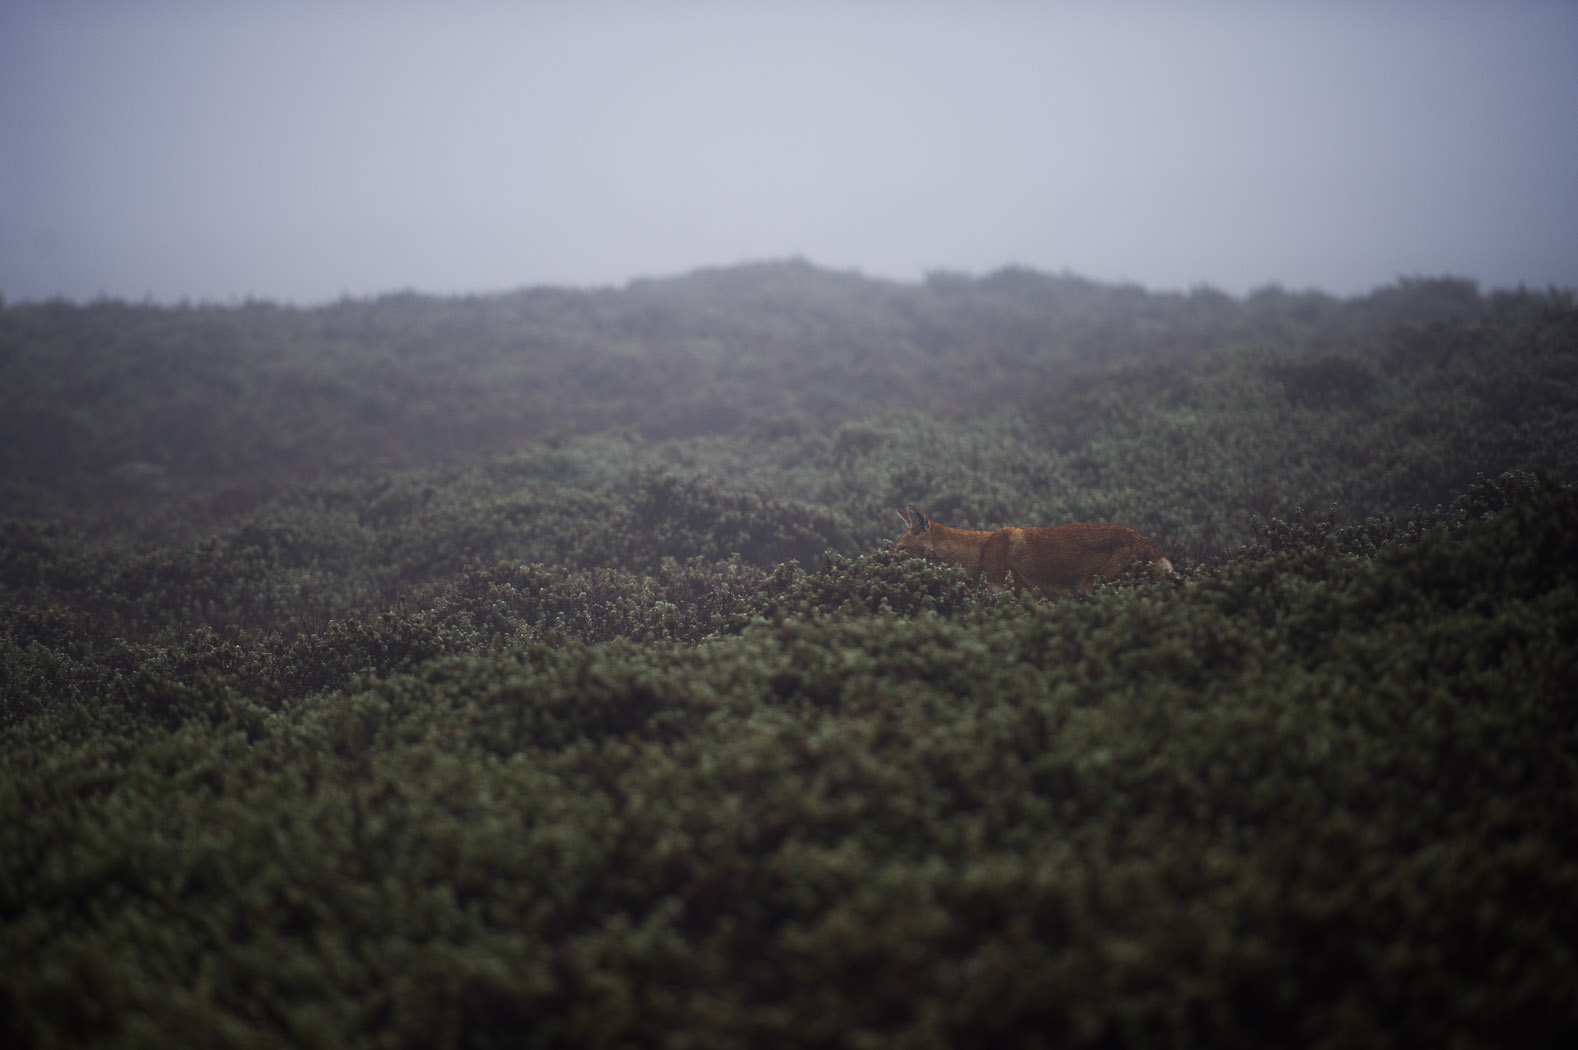 Around half of Ethiopia's wolves live in the Bale Mountains National Park, one of seven Afro-alpine habitats. The Ethiopian wolf lives only on mountains above 3000 metres and its survival is closely linked to the Afro-alpine ecosystems.